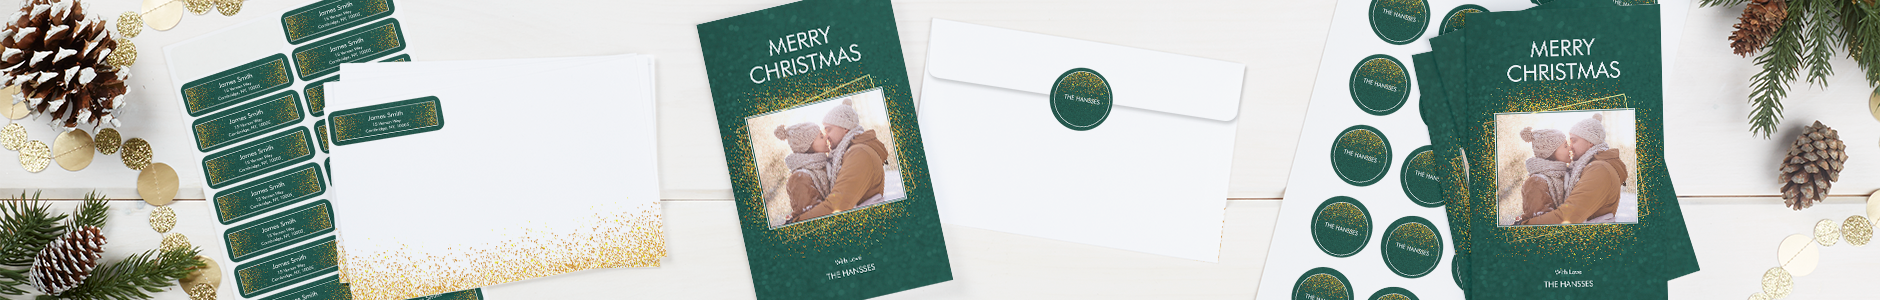 Christmas cards personalized holiday cards vistaprint holiday cards gpp components reheart Gallery